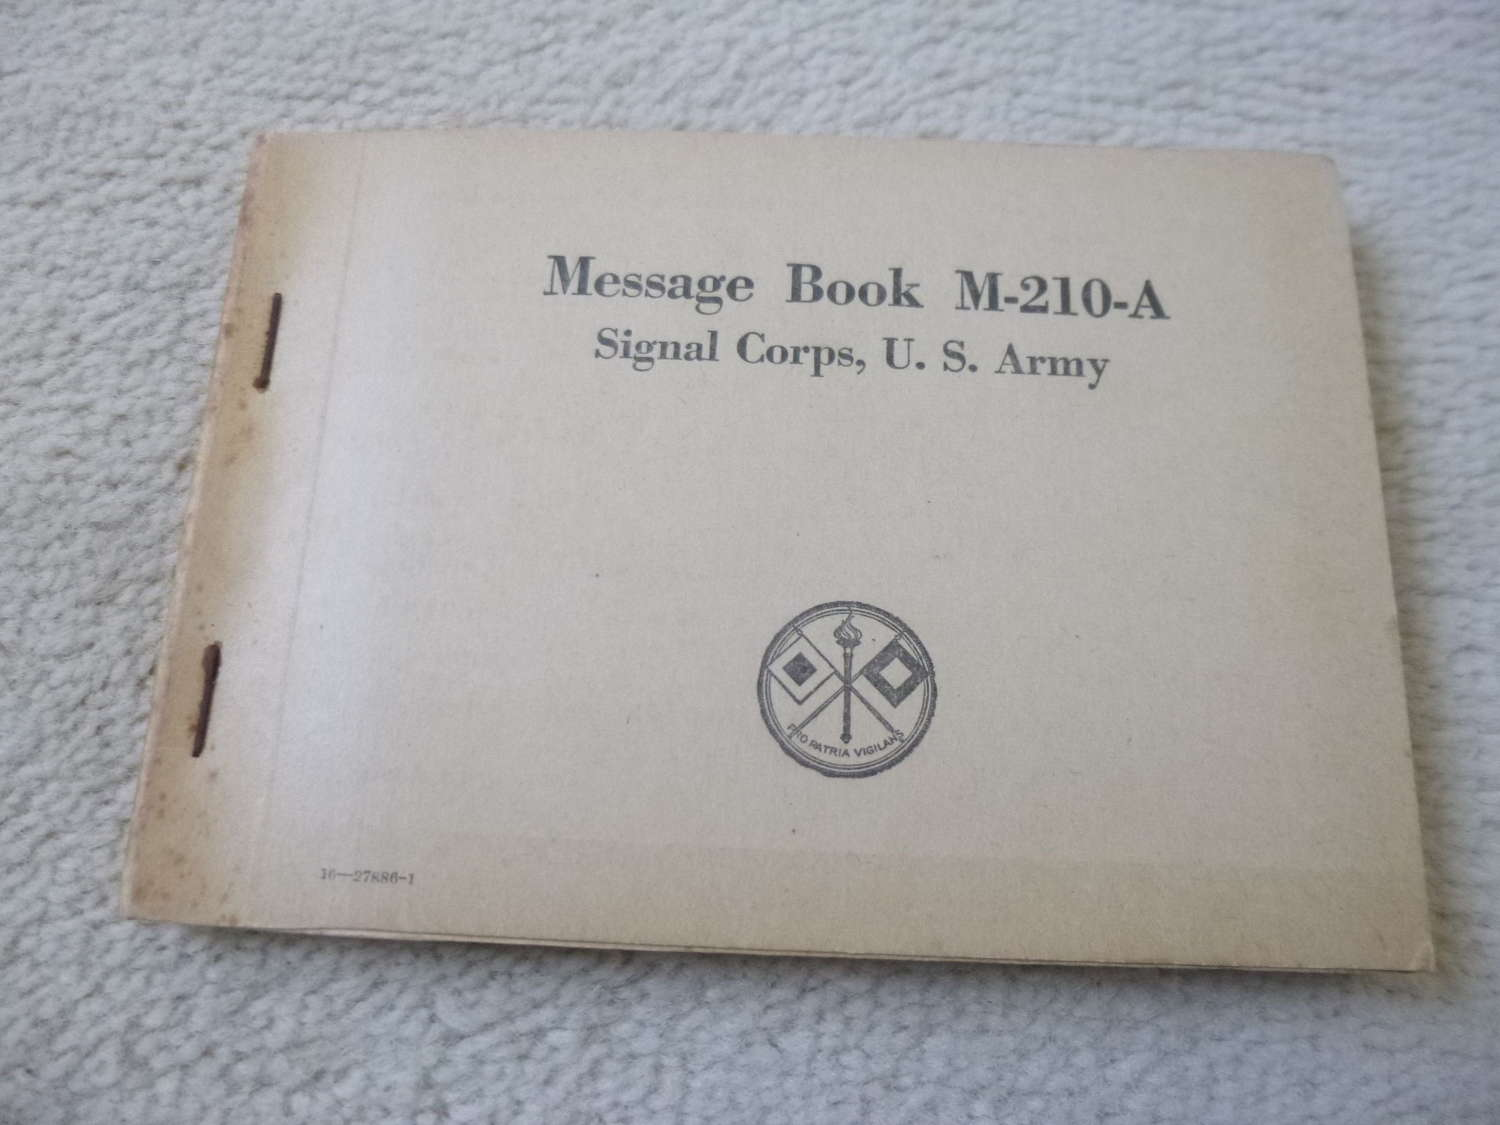 US Army M-210-A Message book